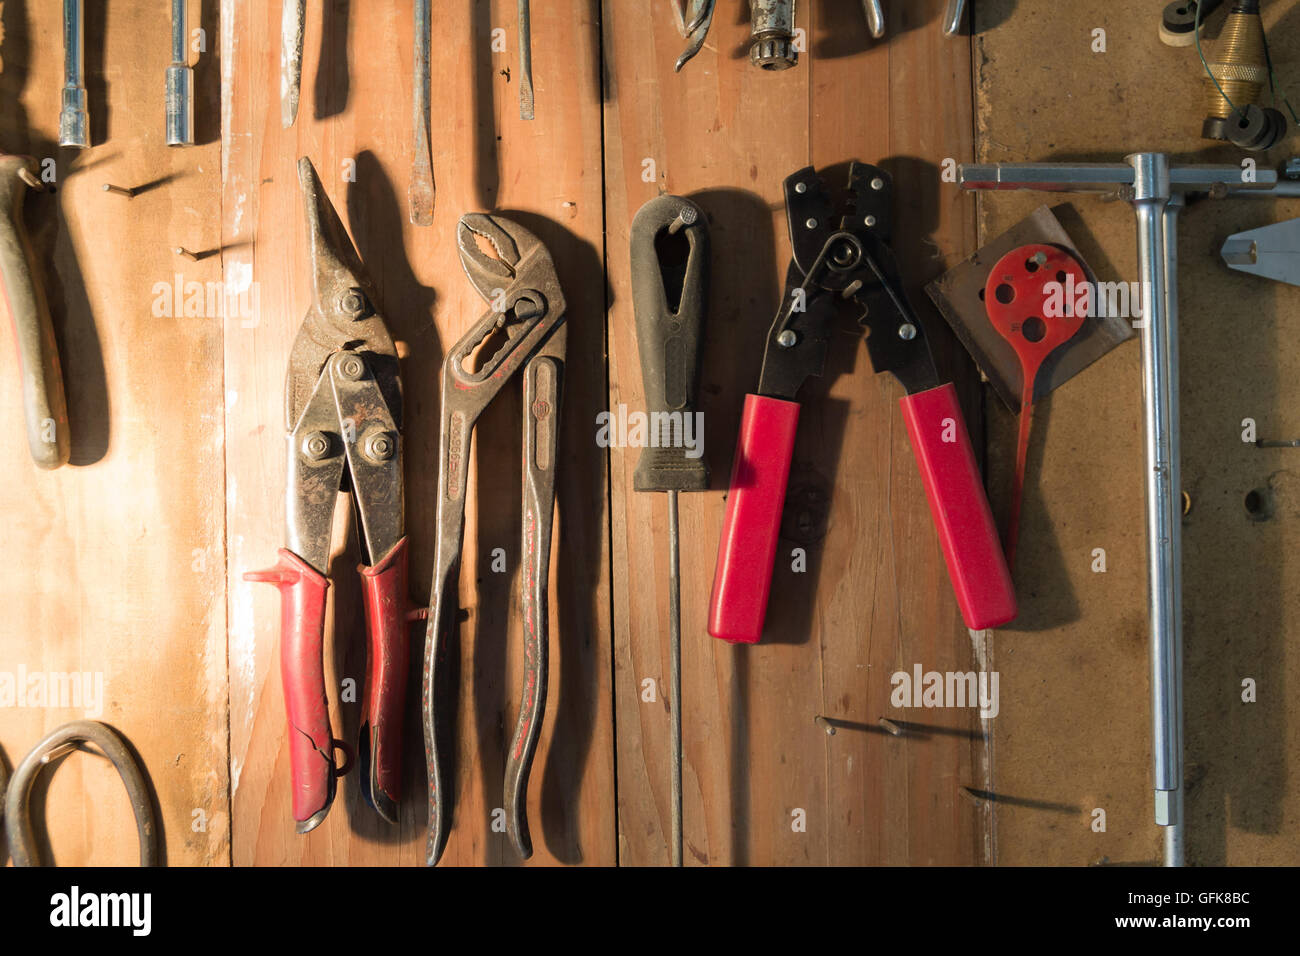 Hand Tool background. Industrial background. Bricolage tools. - Stock Image